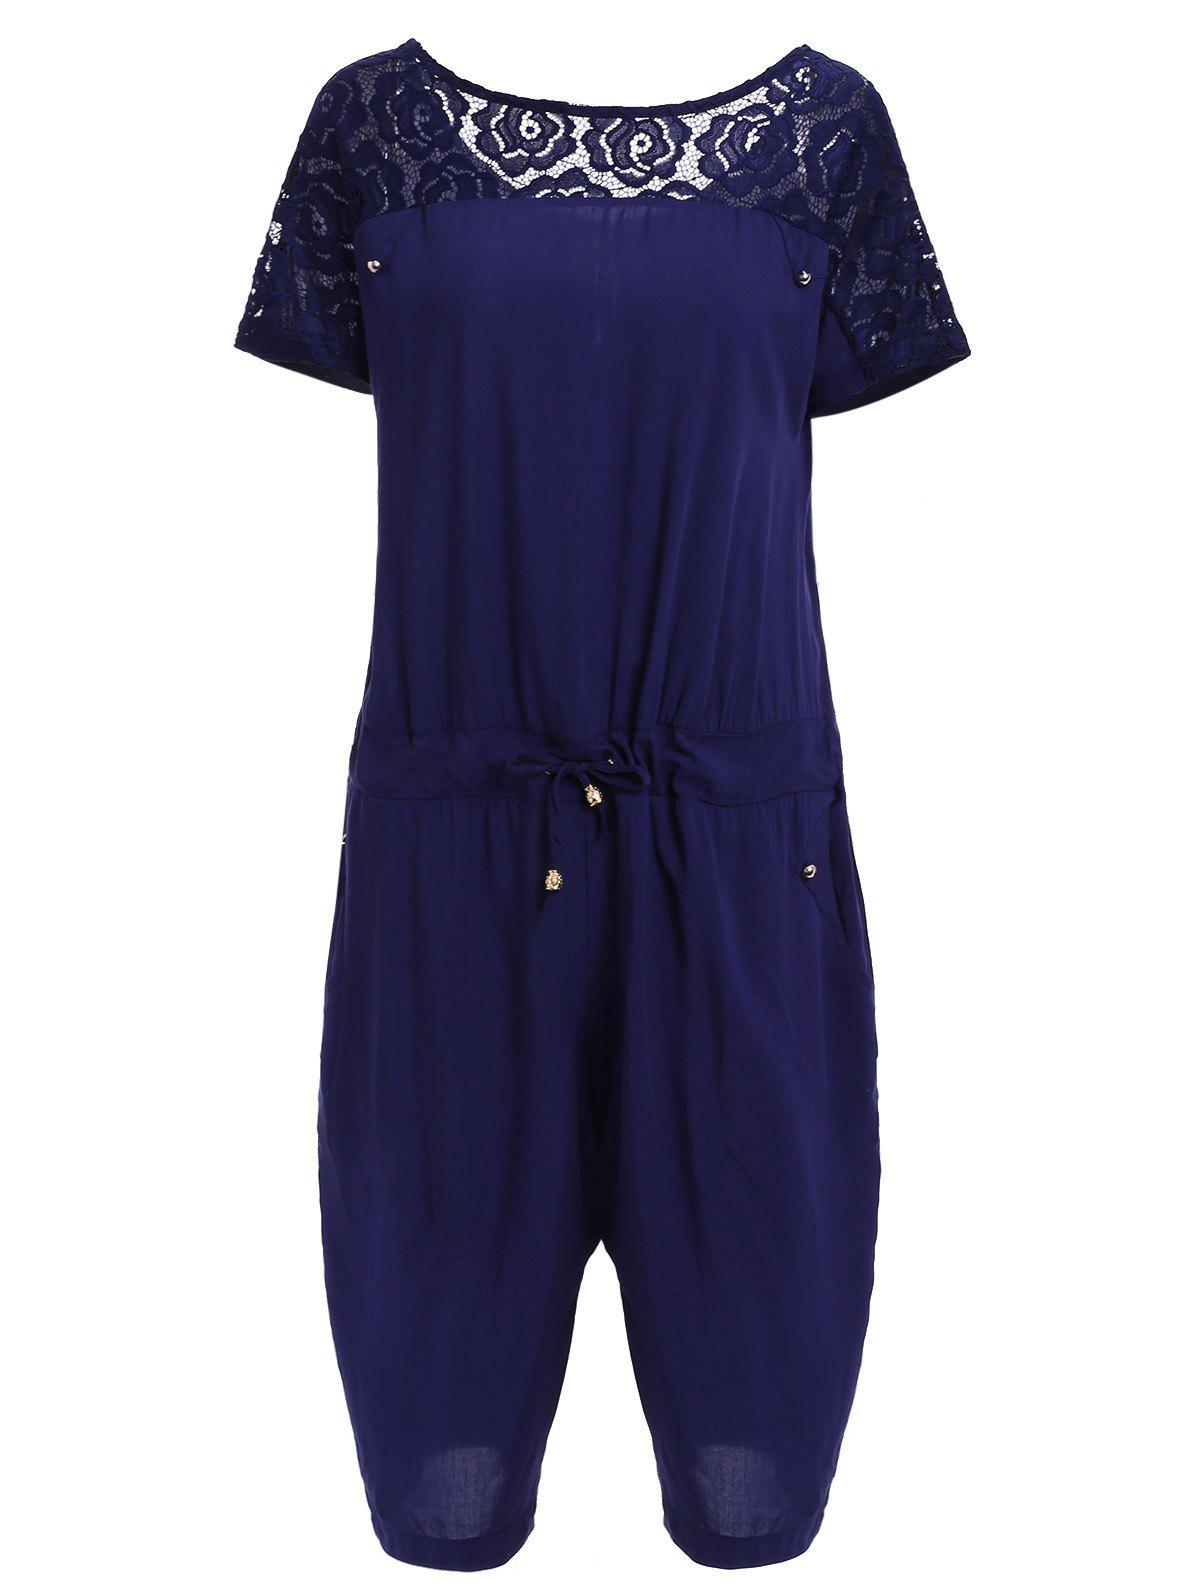 Casual Style Round Neck Short Sleeve Lace Spliced Plus Size Women's Romper - PURPLISH BLUE 6XL